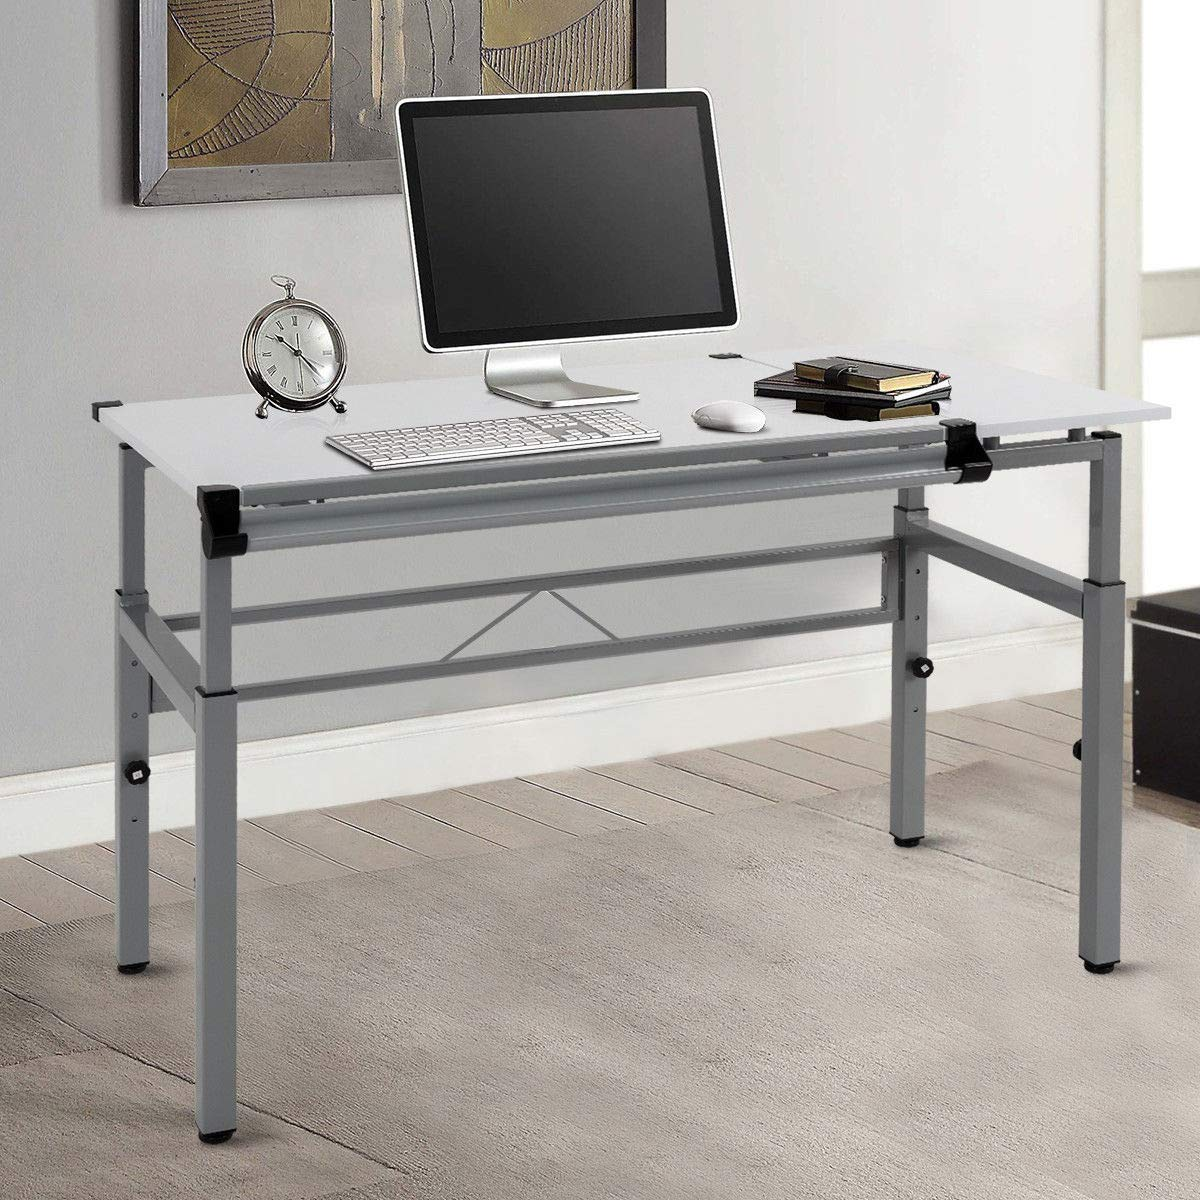 Seleq Adjustable Steel Frame Drawing Desk Drafting Table by Seleq (Image #8)